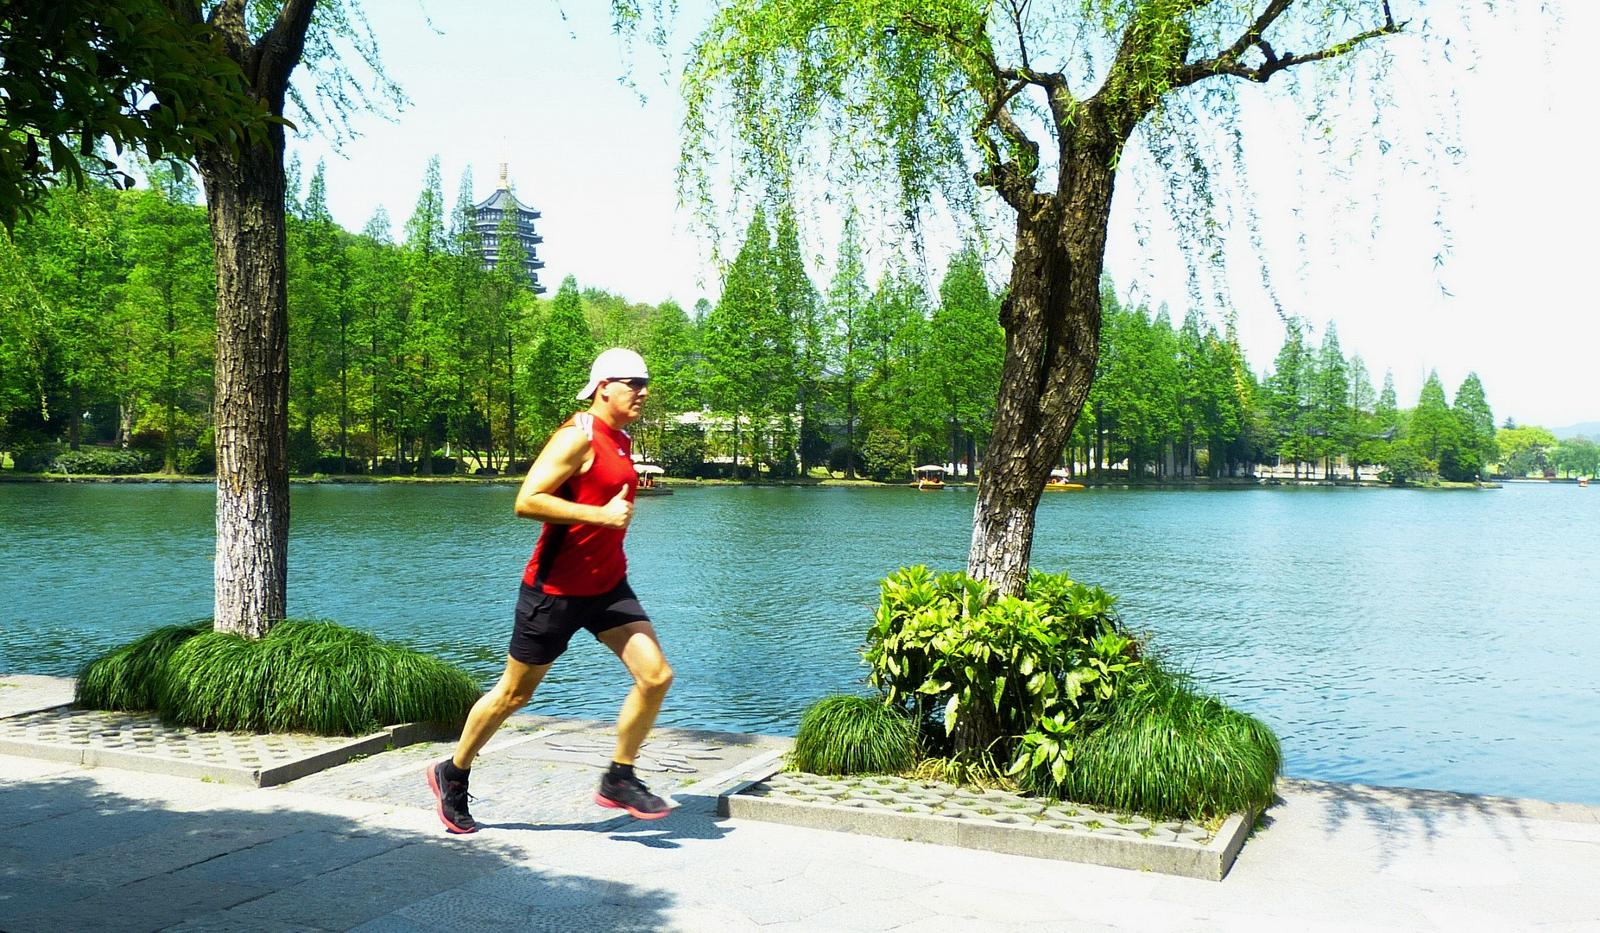 mynd af West-Lake-22.3-km-Jon-De-Leon-Hangzhou-China-4-13-13